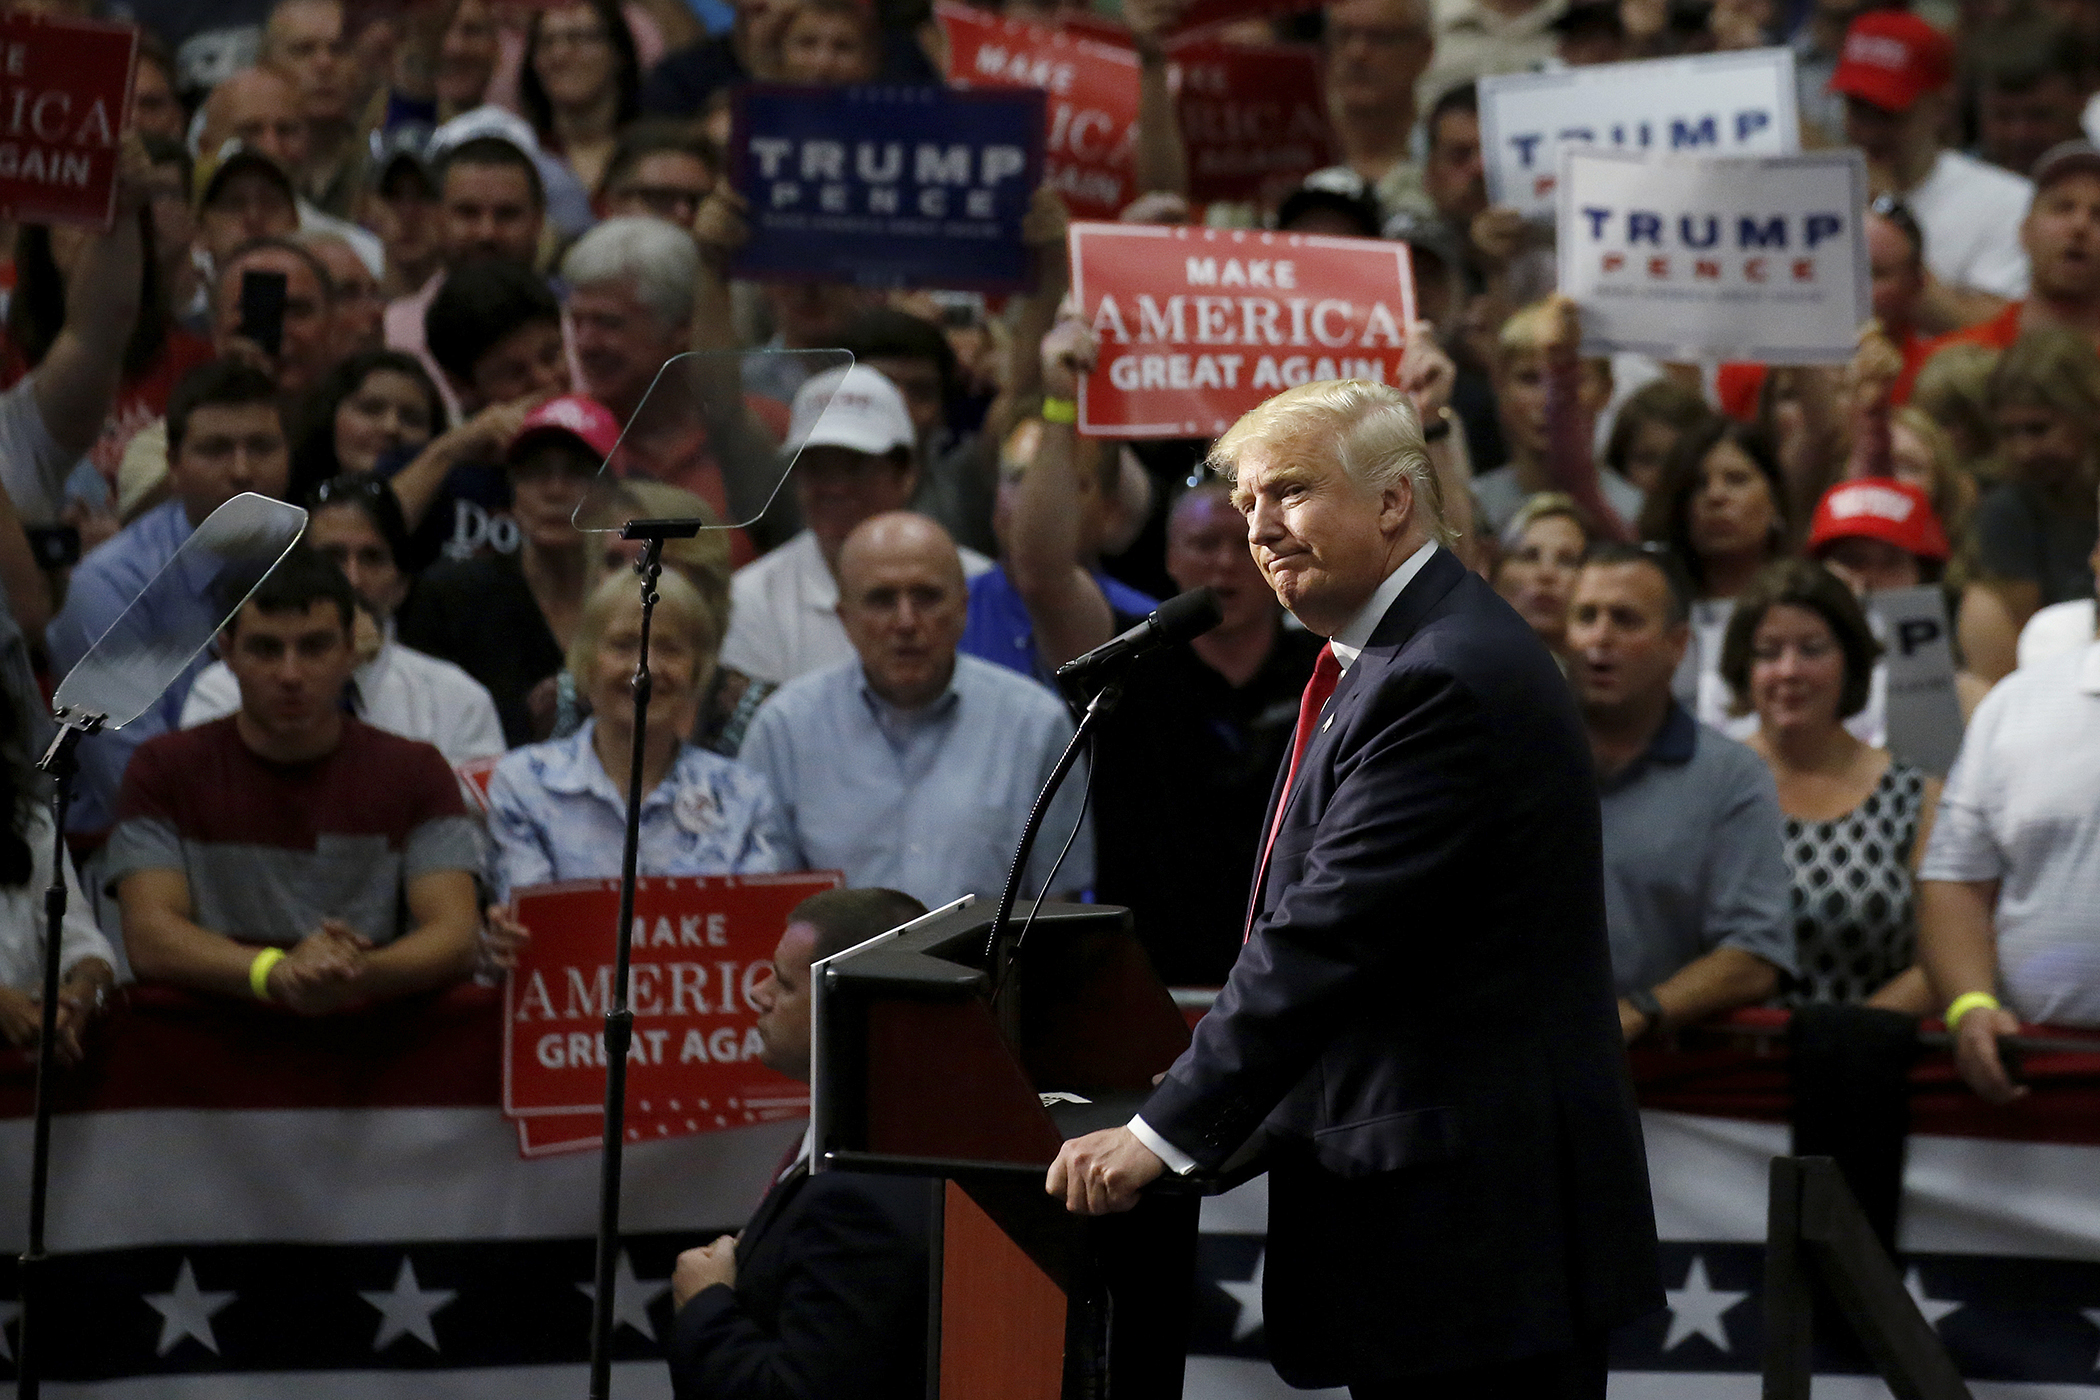 Republican presidential nominee Donald Trump speaks onstage during a campaign rally in Akron, Ohio, August 22, 2016.